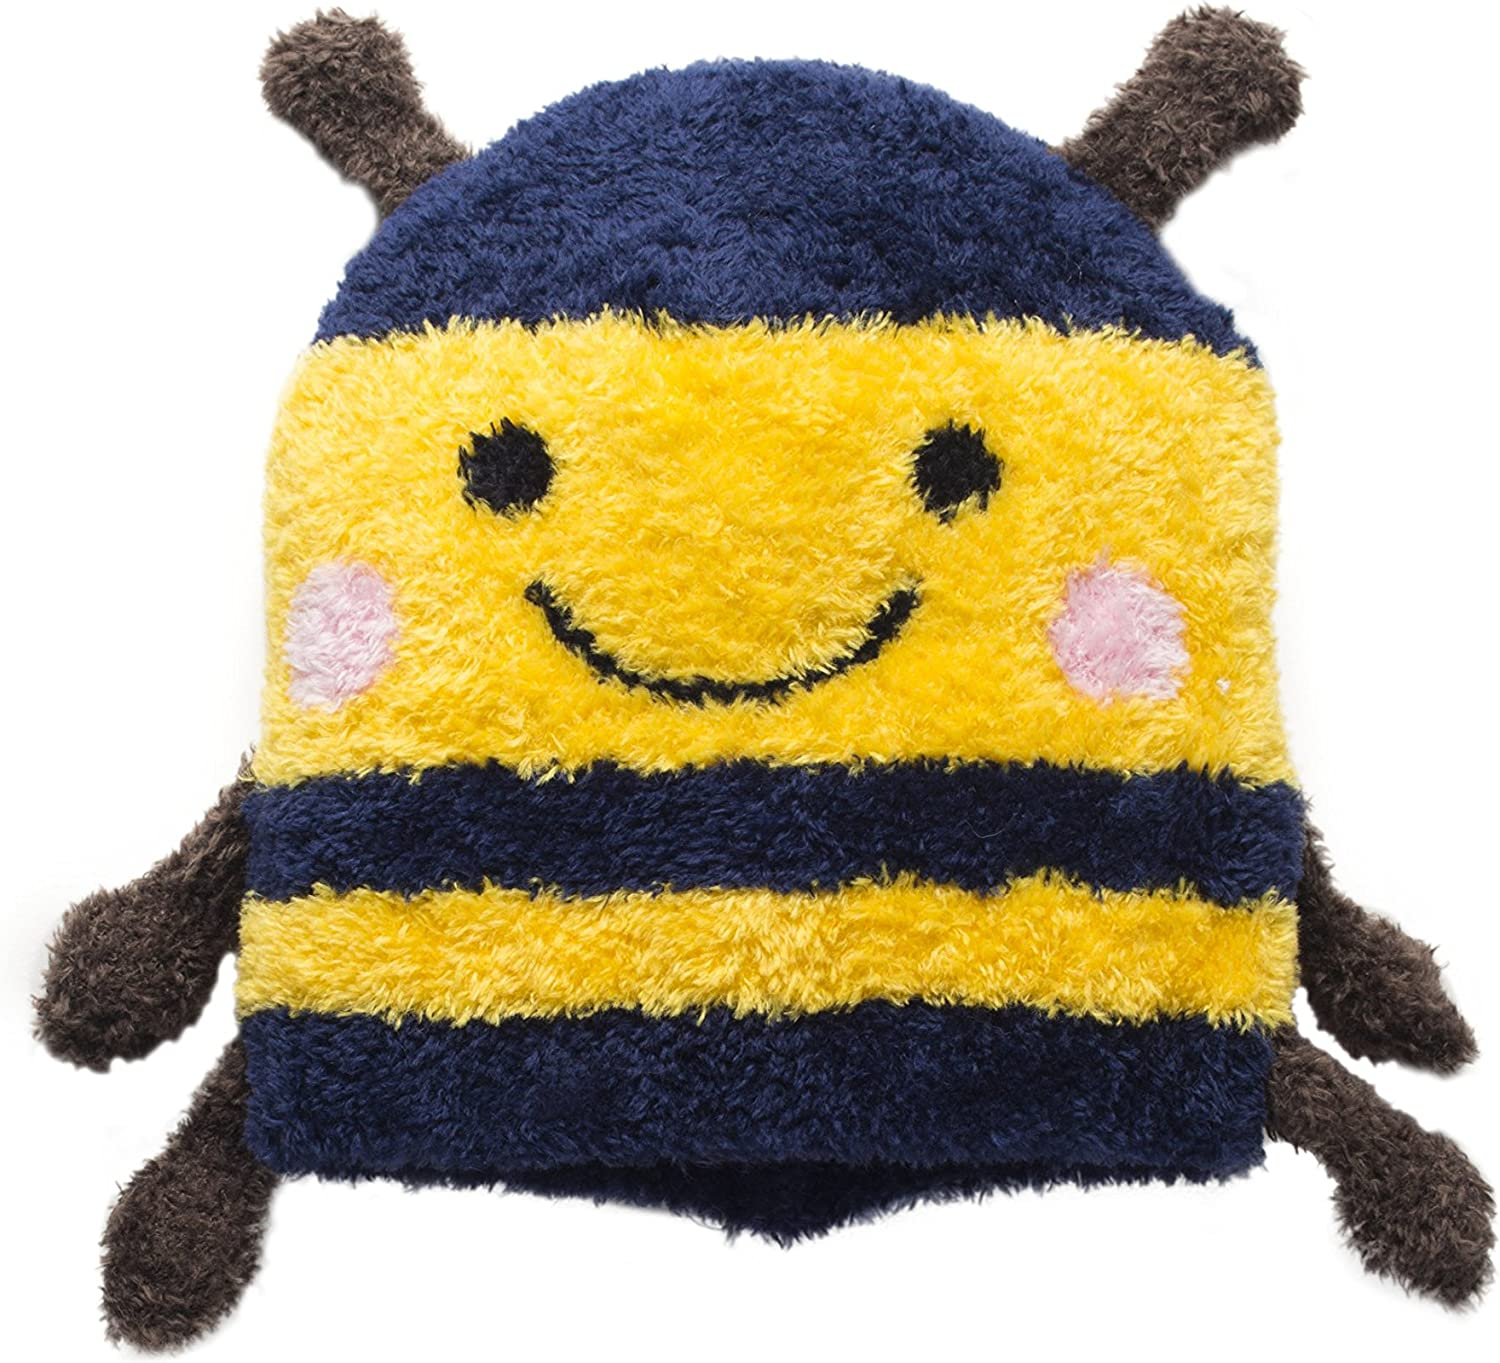 Bumble Bee Hat for Kids and Toddlers Outdoor Cap for Fun Ski Play Unisex Yellow Blue